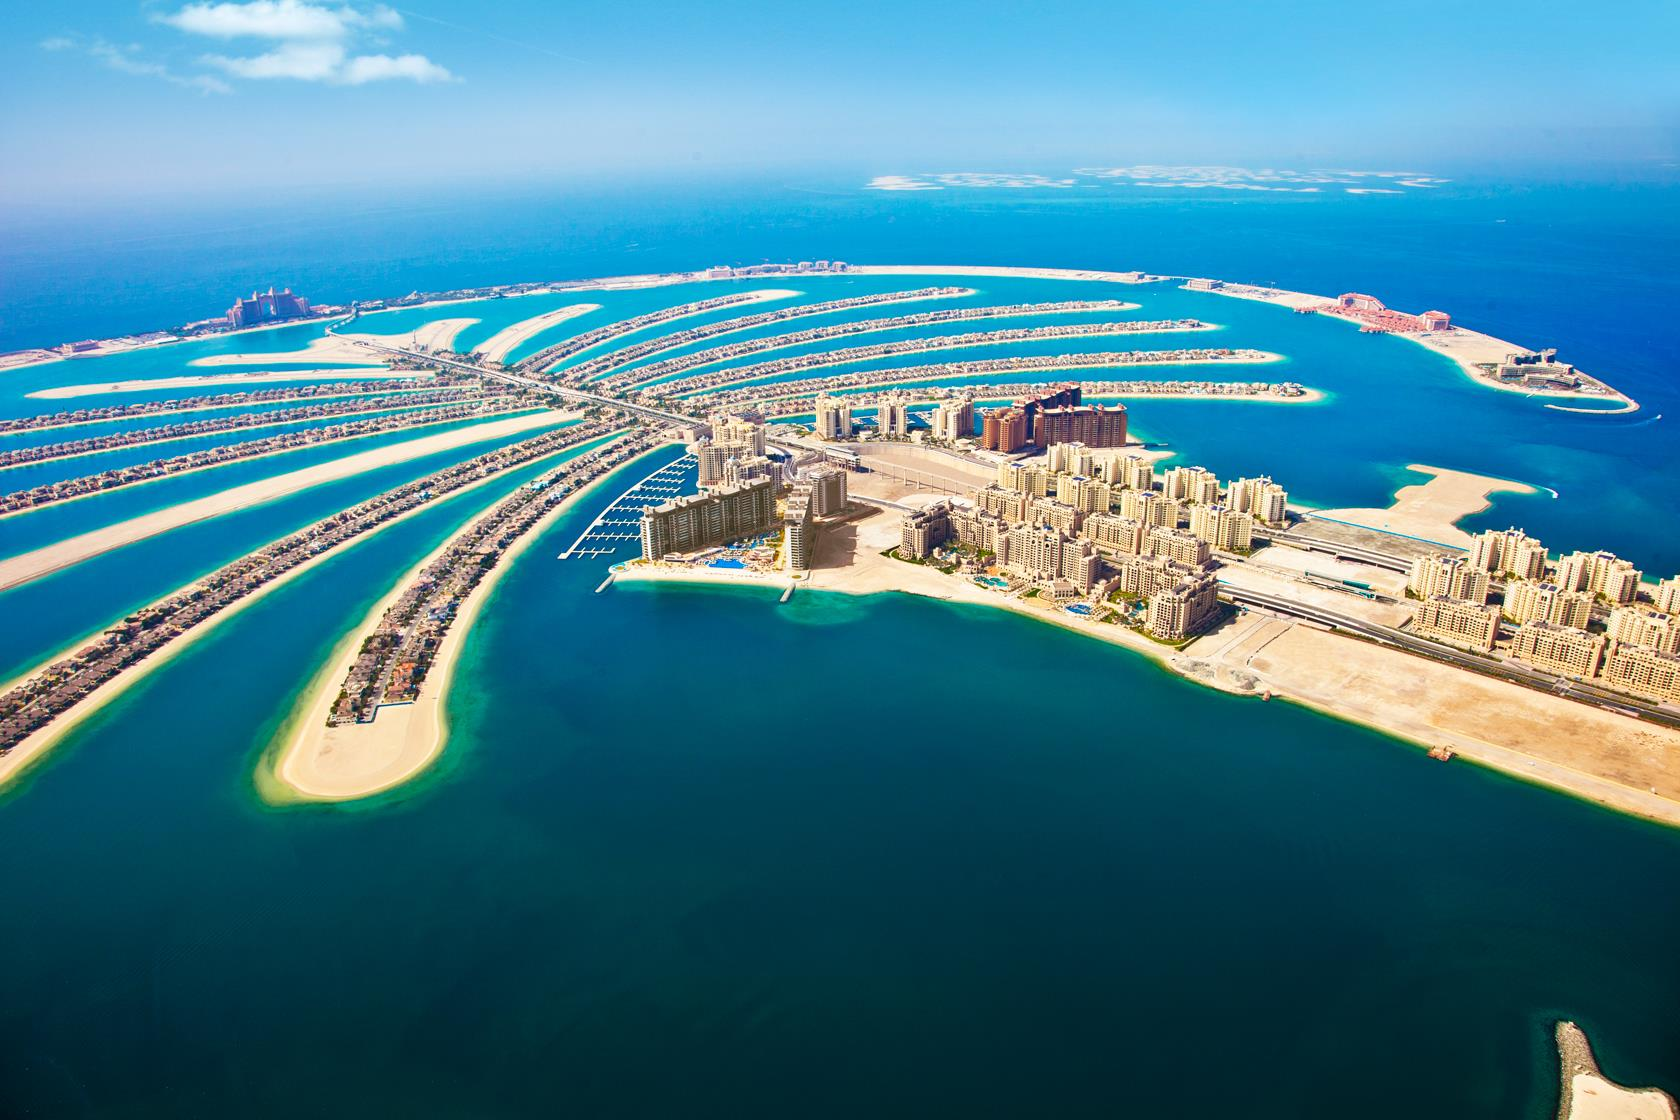 BRAND NEW Luxurious hotel located on the Palm Jumeirah with ocean views at only £399pp